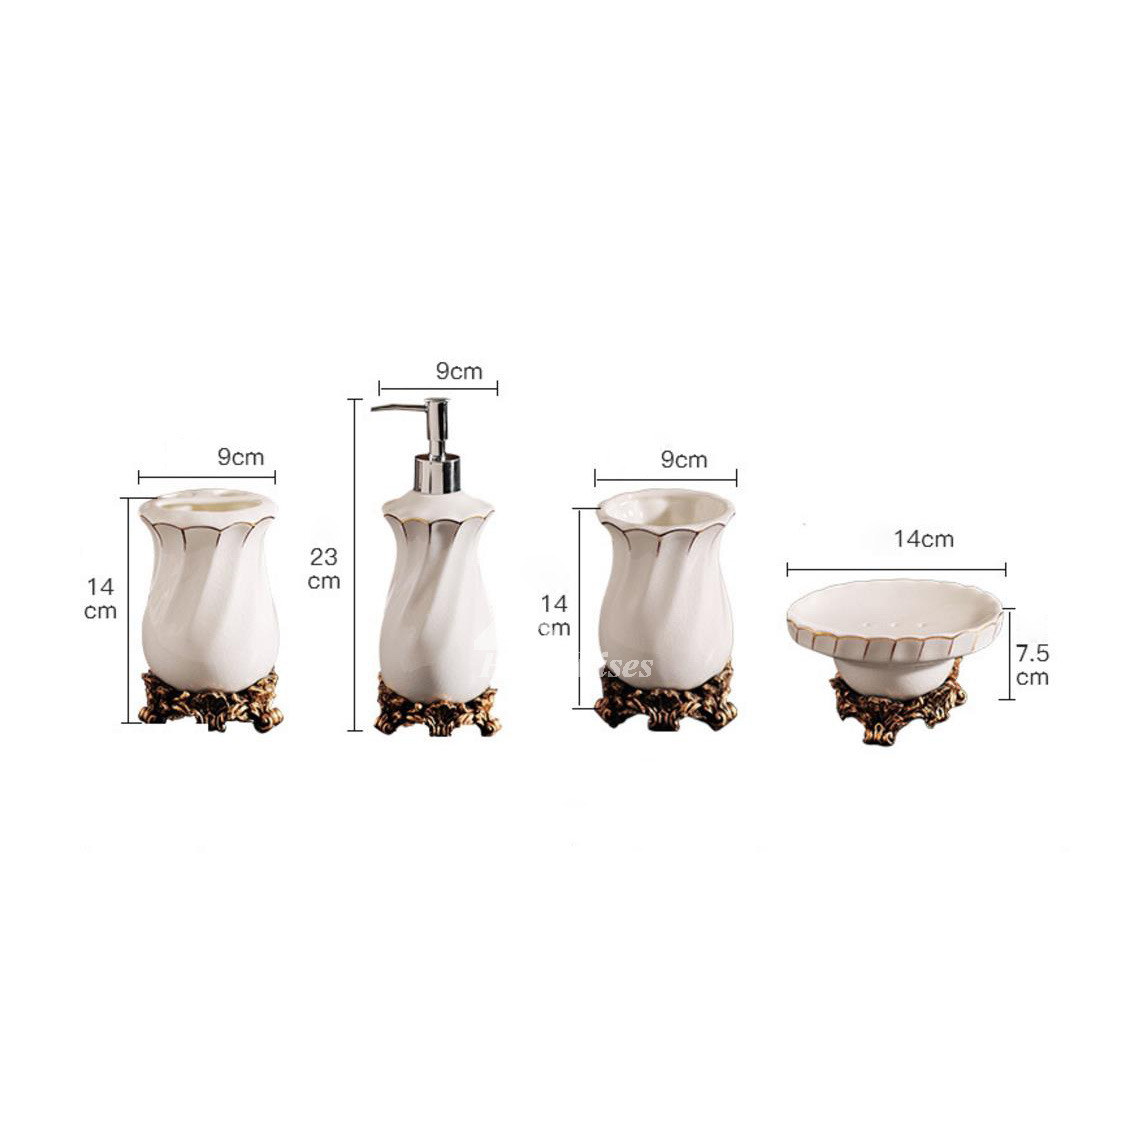 High end crack ceramic bathroom accessories set in white for Ceramic bathroom accessories sets